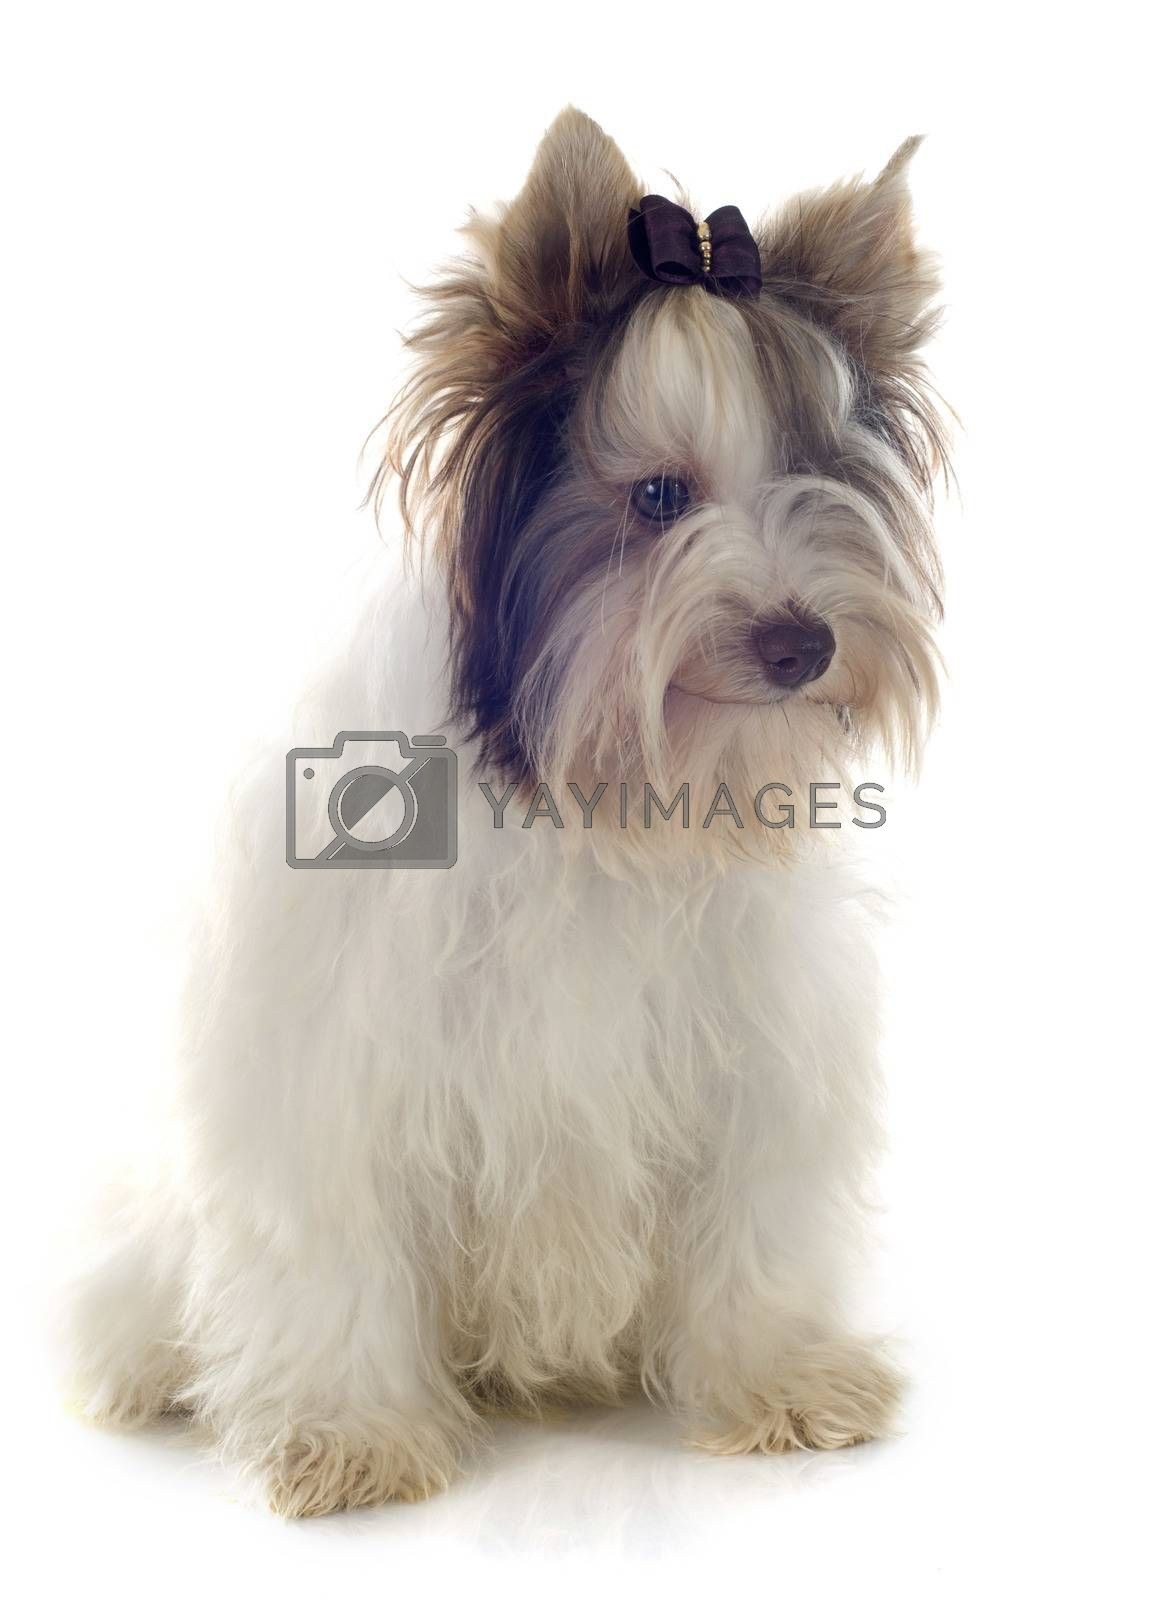 Royalty free image of biewer yorkshire terrier by cynoclub